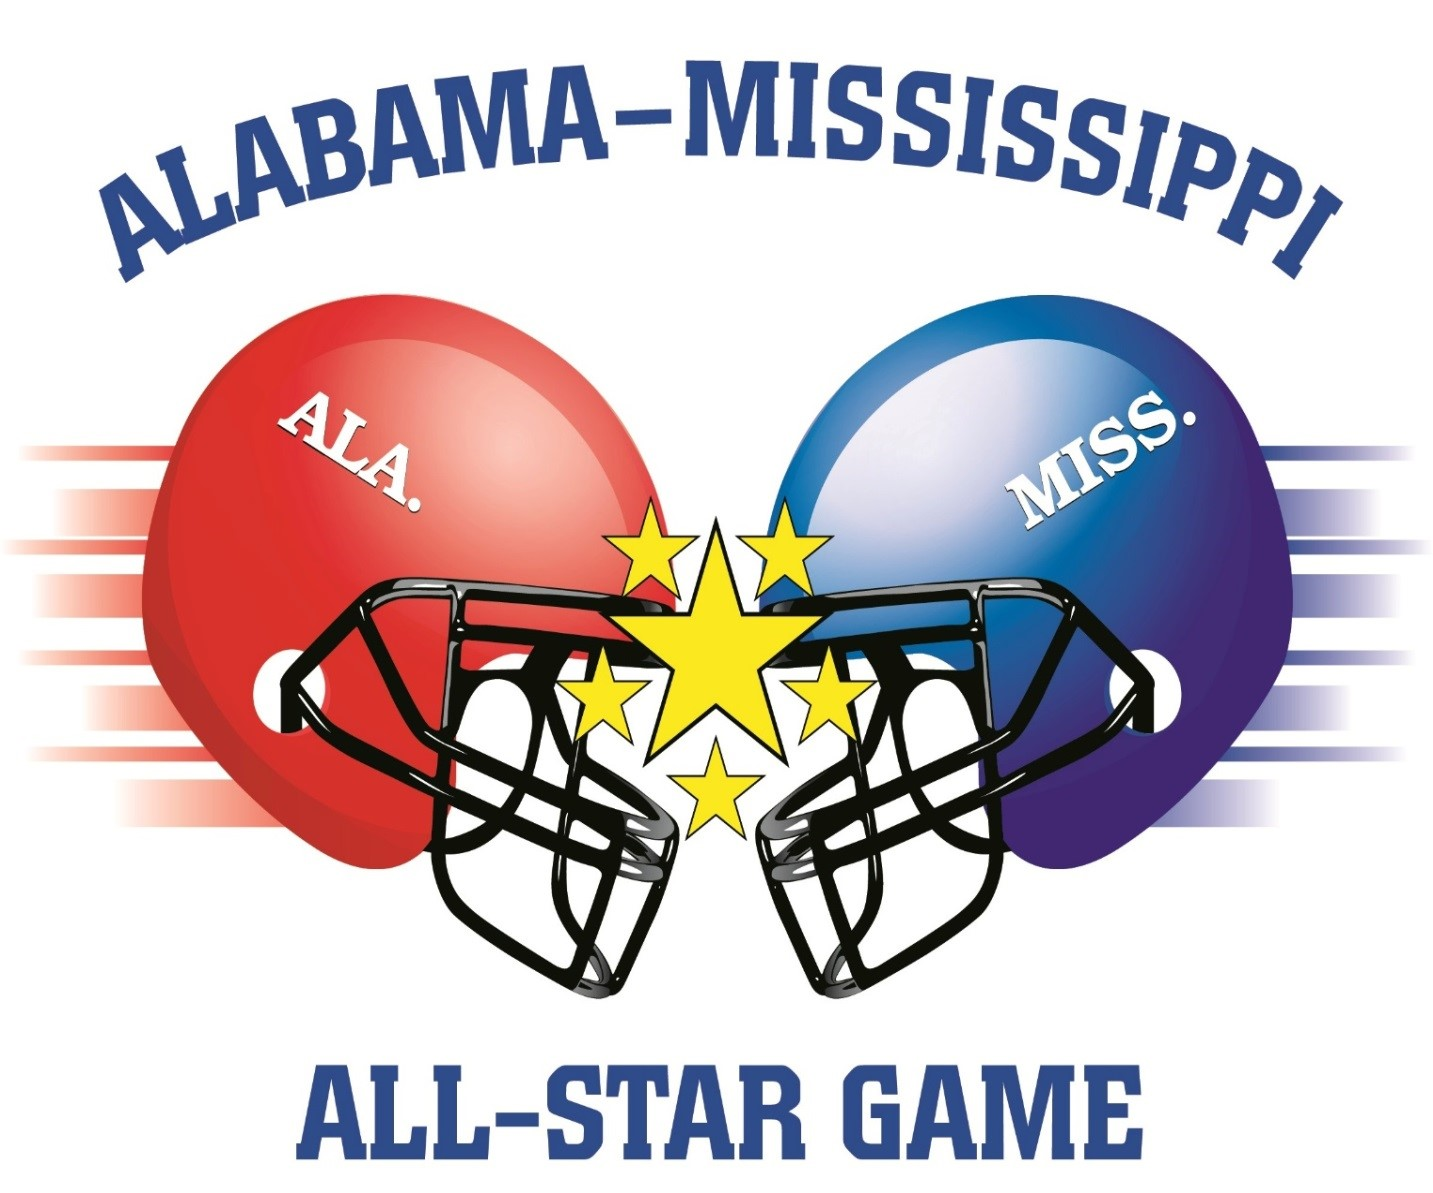 Alabama, Mississippi All-Star Teams Pleased with Teams' Progress after First 2 Practices